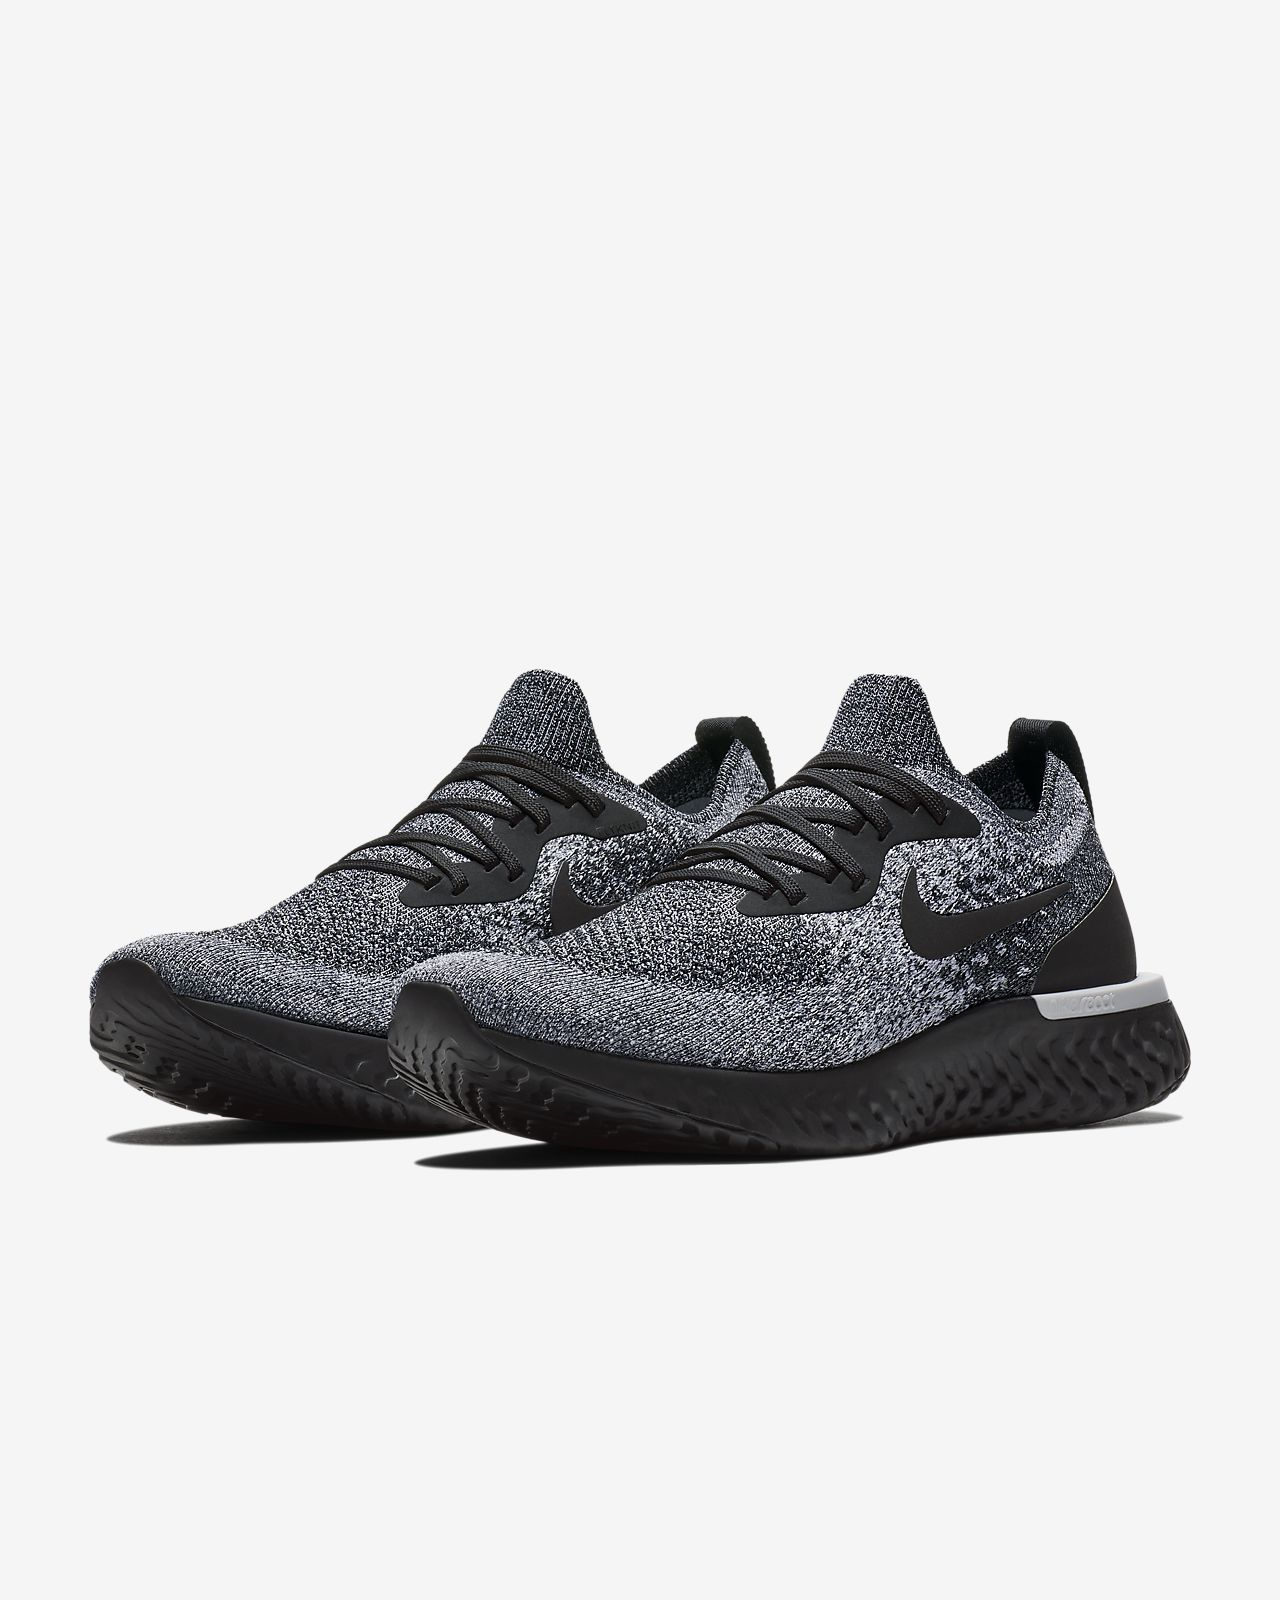 online store 95a4c e6616 ... Nike Epic React Flyknit Men s Running Shoe